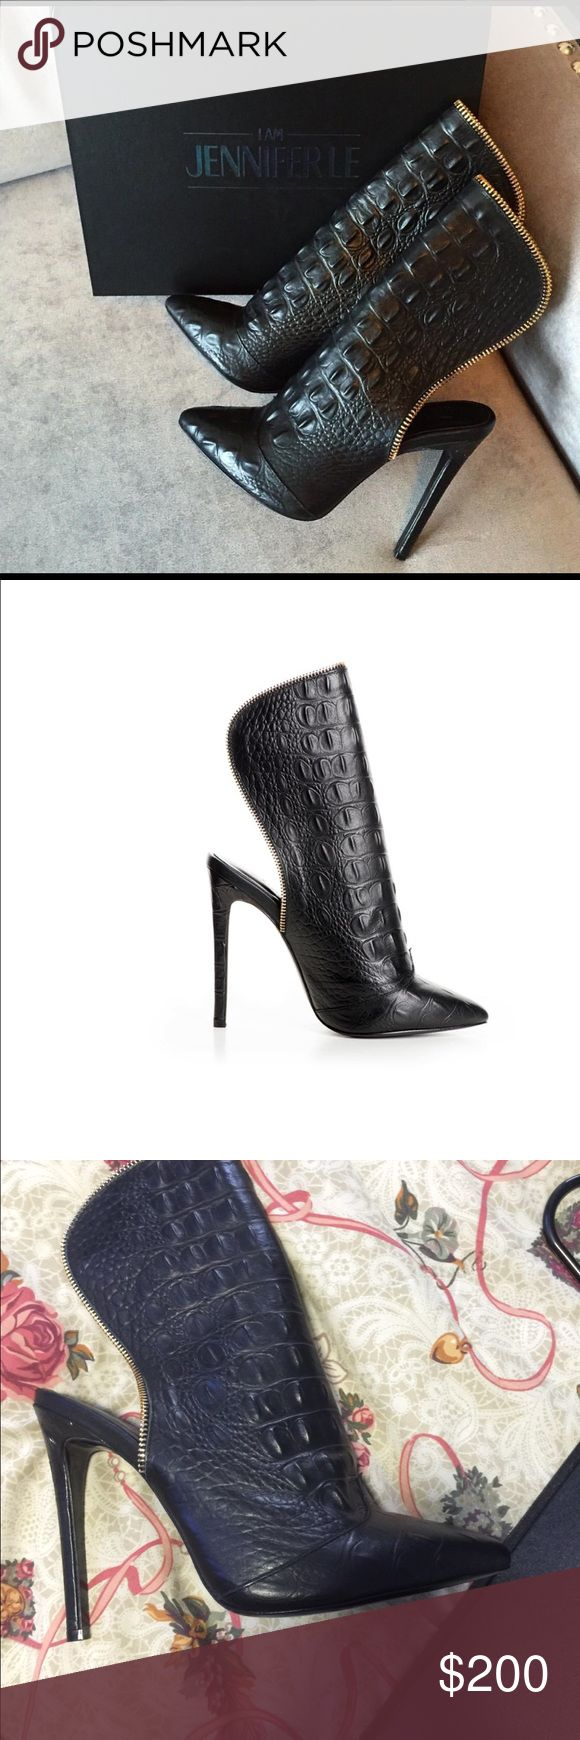 Black Caiman Boots Fabulous Rare never worn  Black Caiman Boot/heels.  One of a kind! Original Box. IAMJENNIFERLE Shoes Ankle Boots & Booties